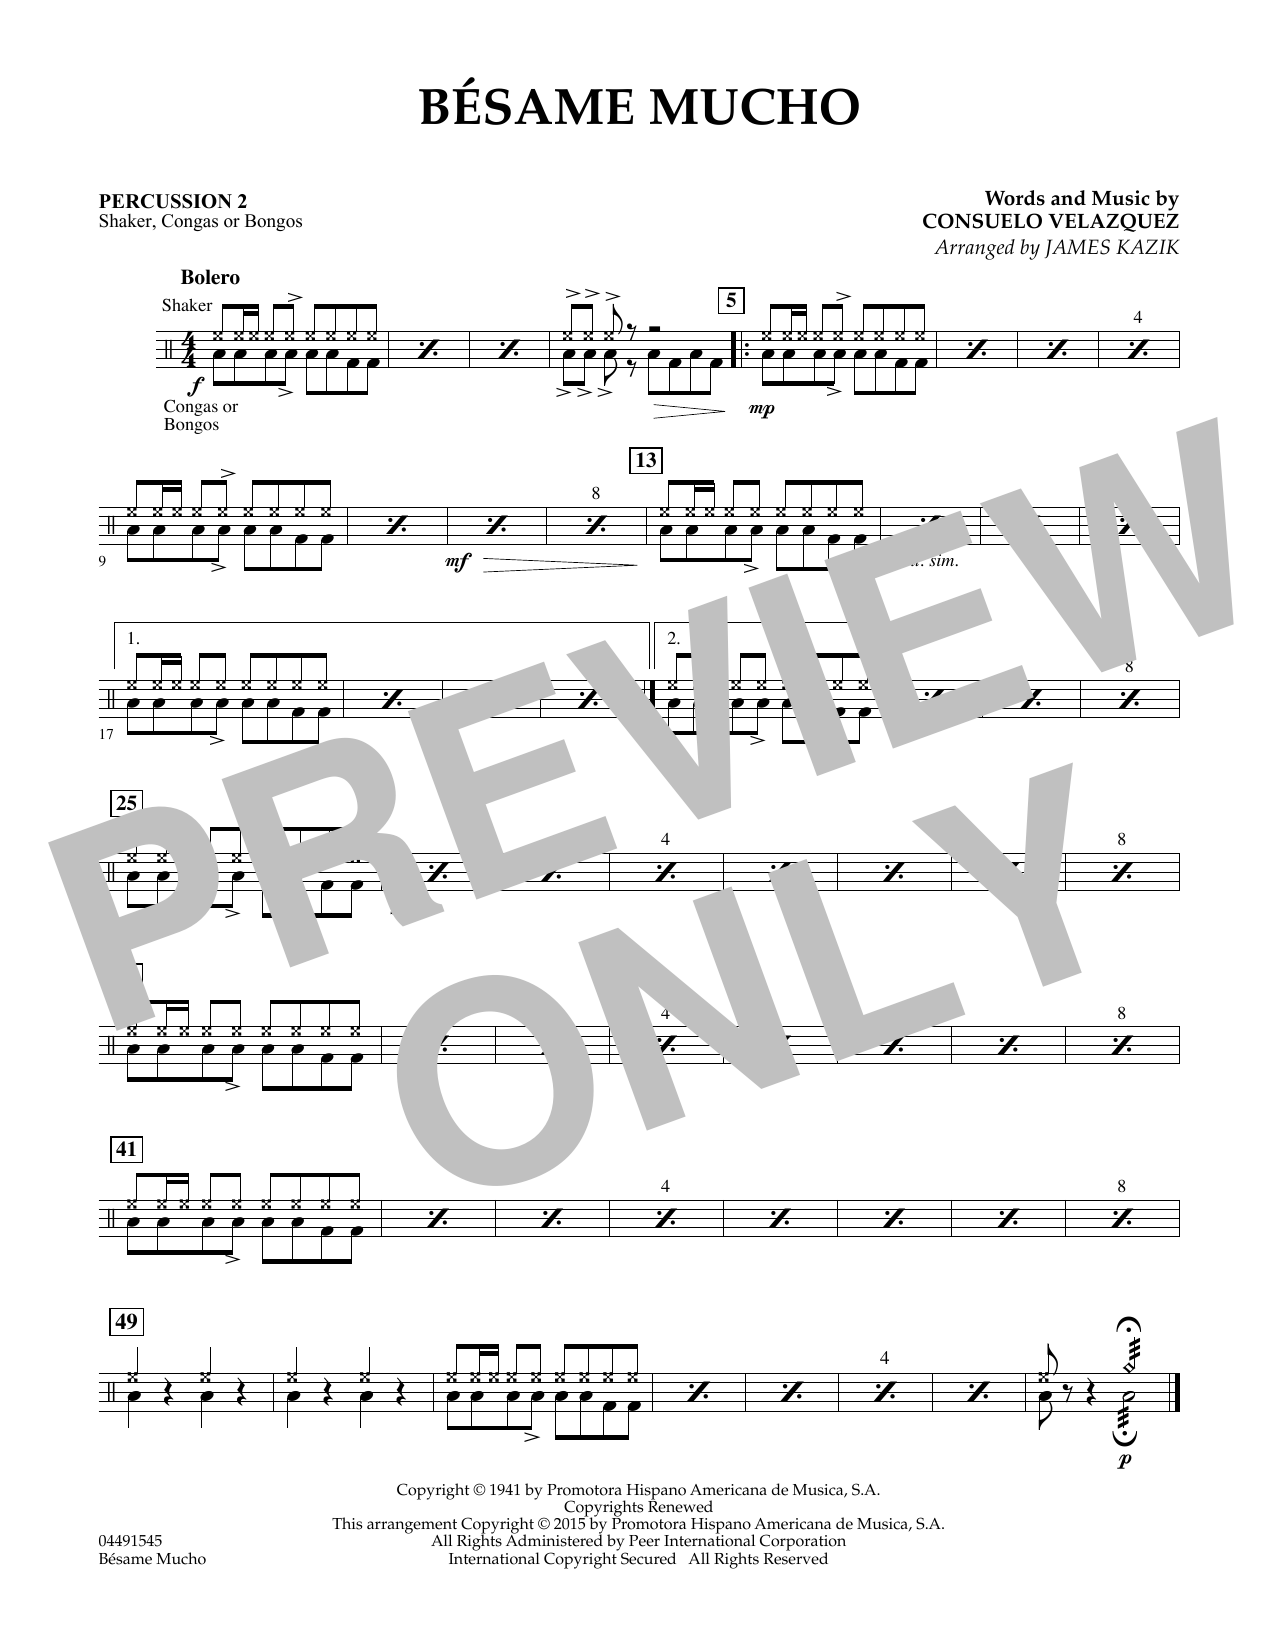 Besame Mucho - Percussion 2 (Orchestra)